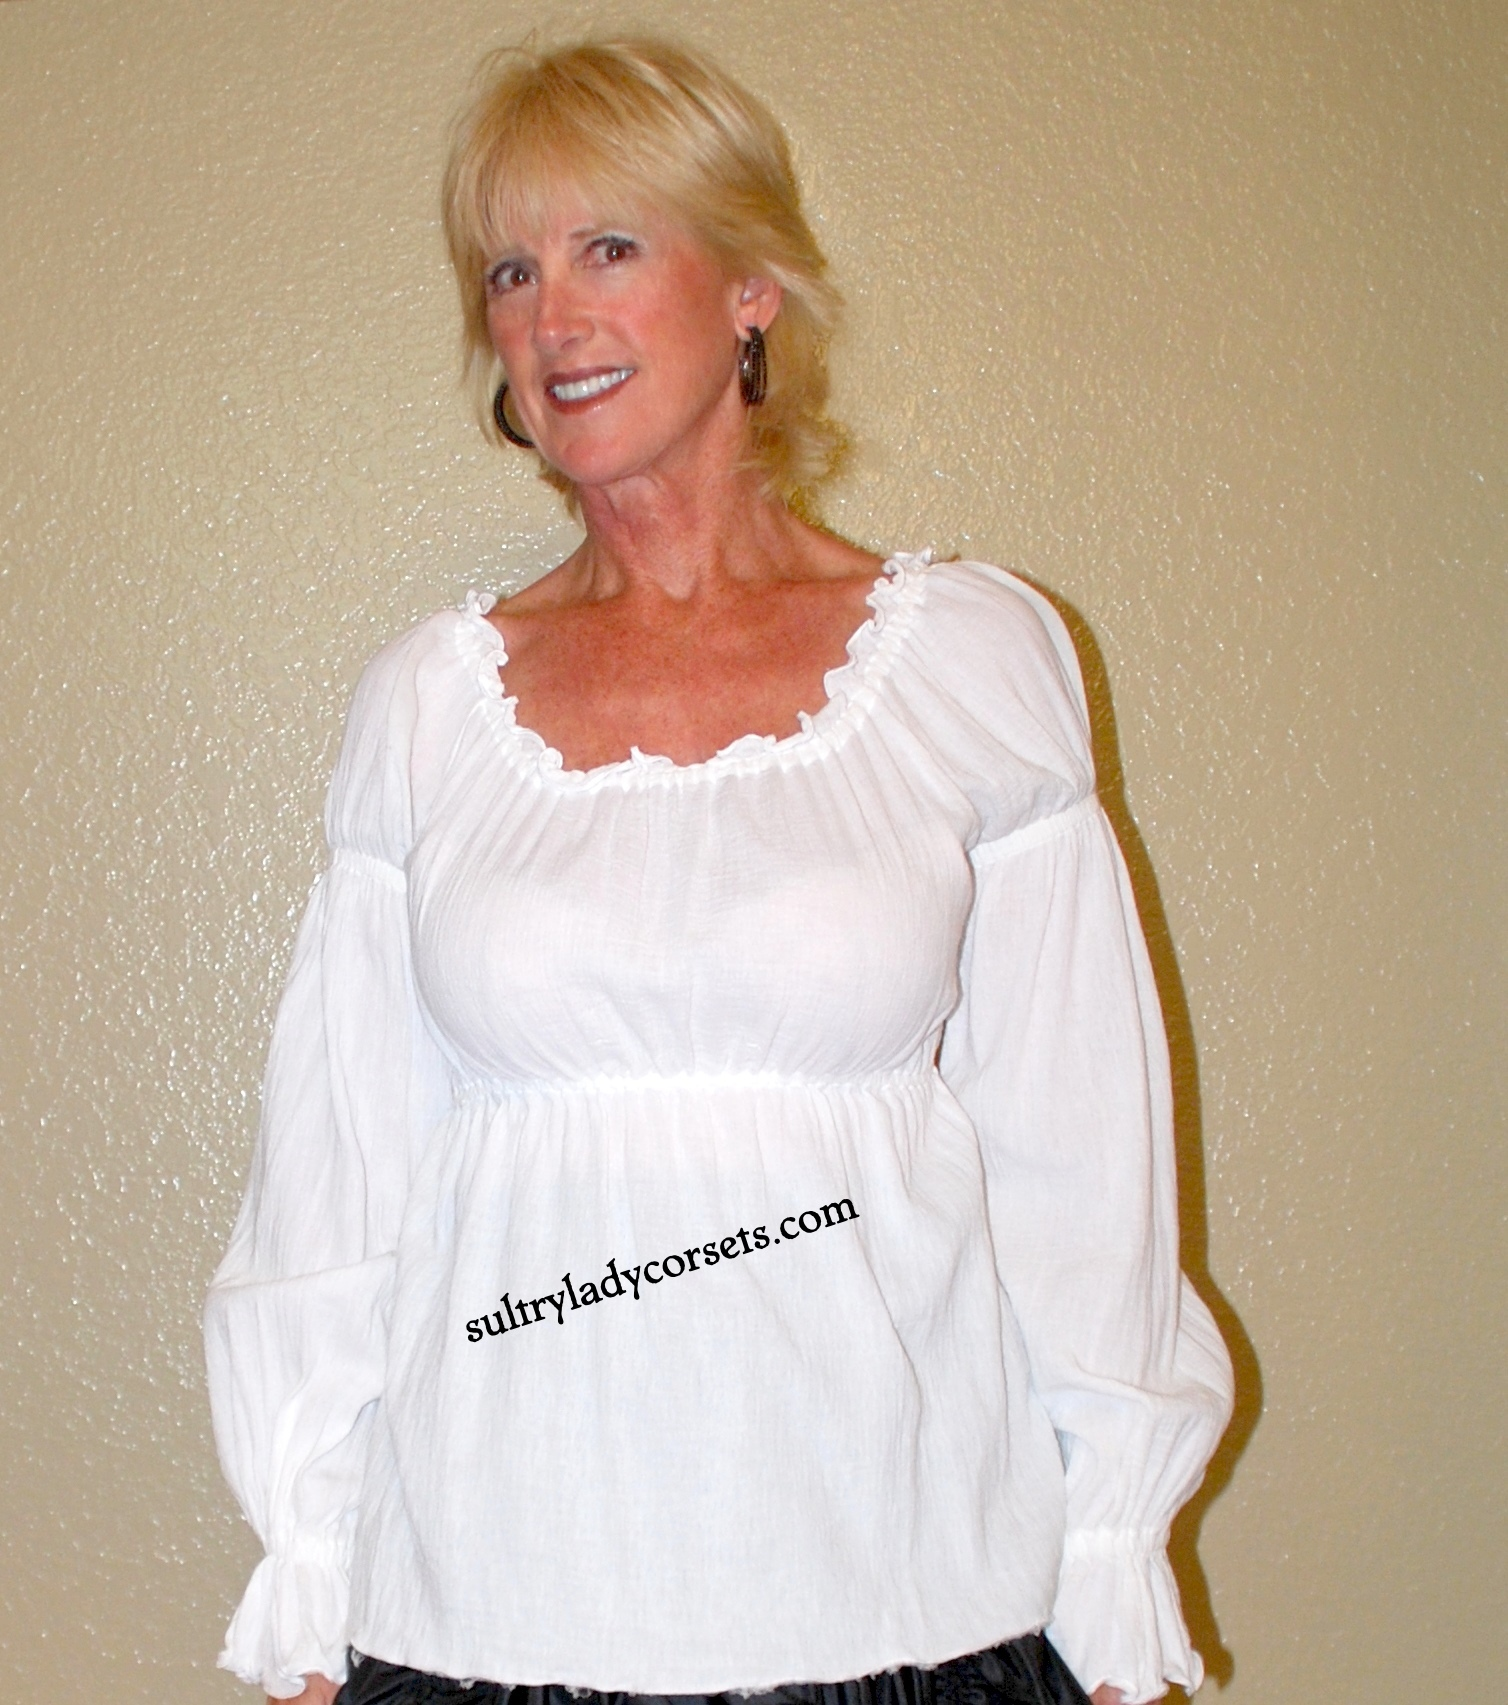 white peasant blouse-sultry lady corsets zmhsygv